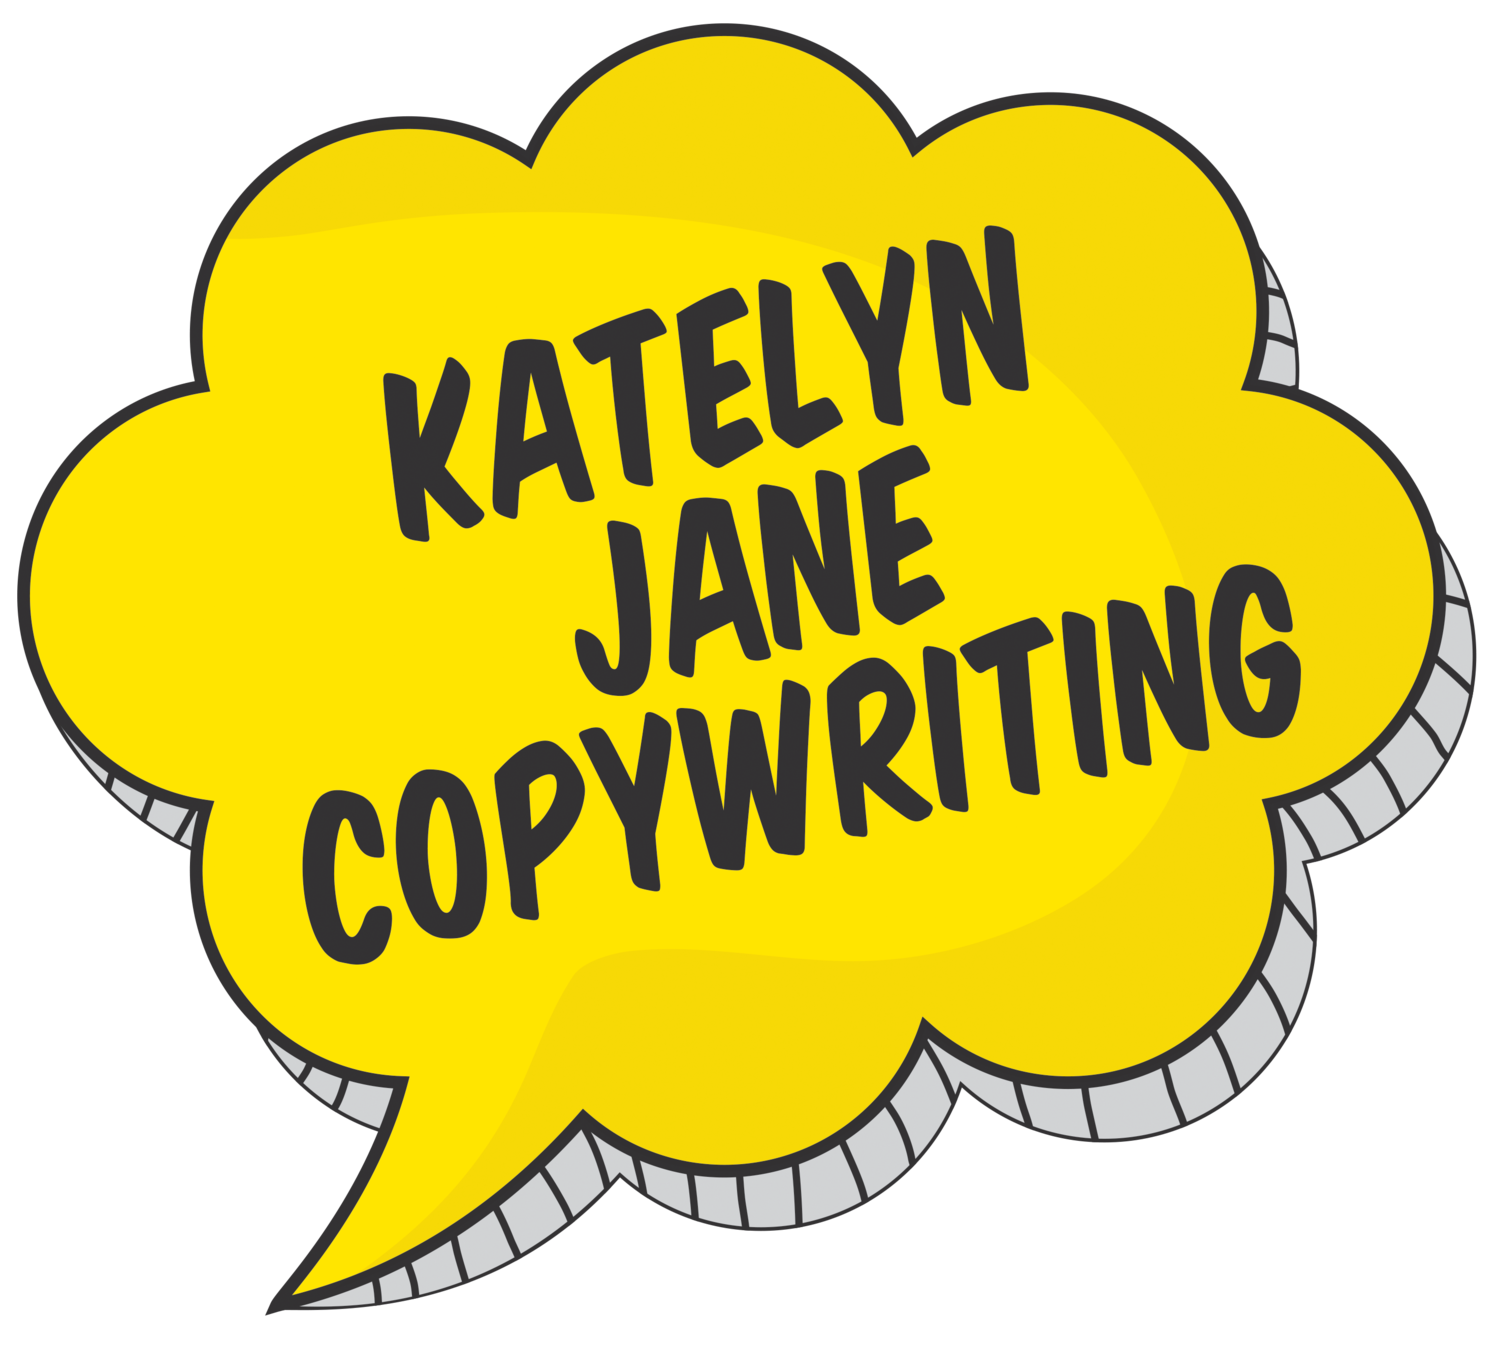 Katelyn Jane Copywriting